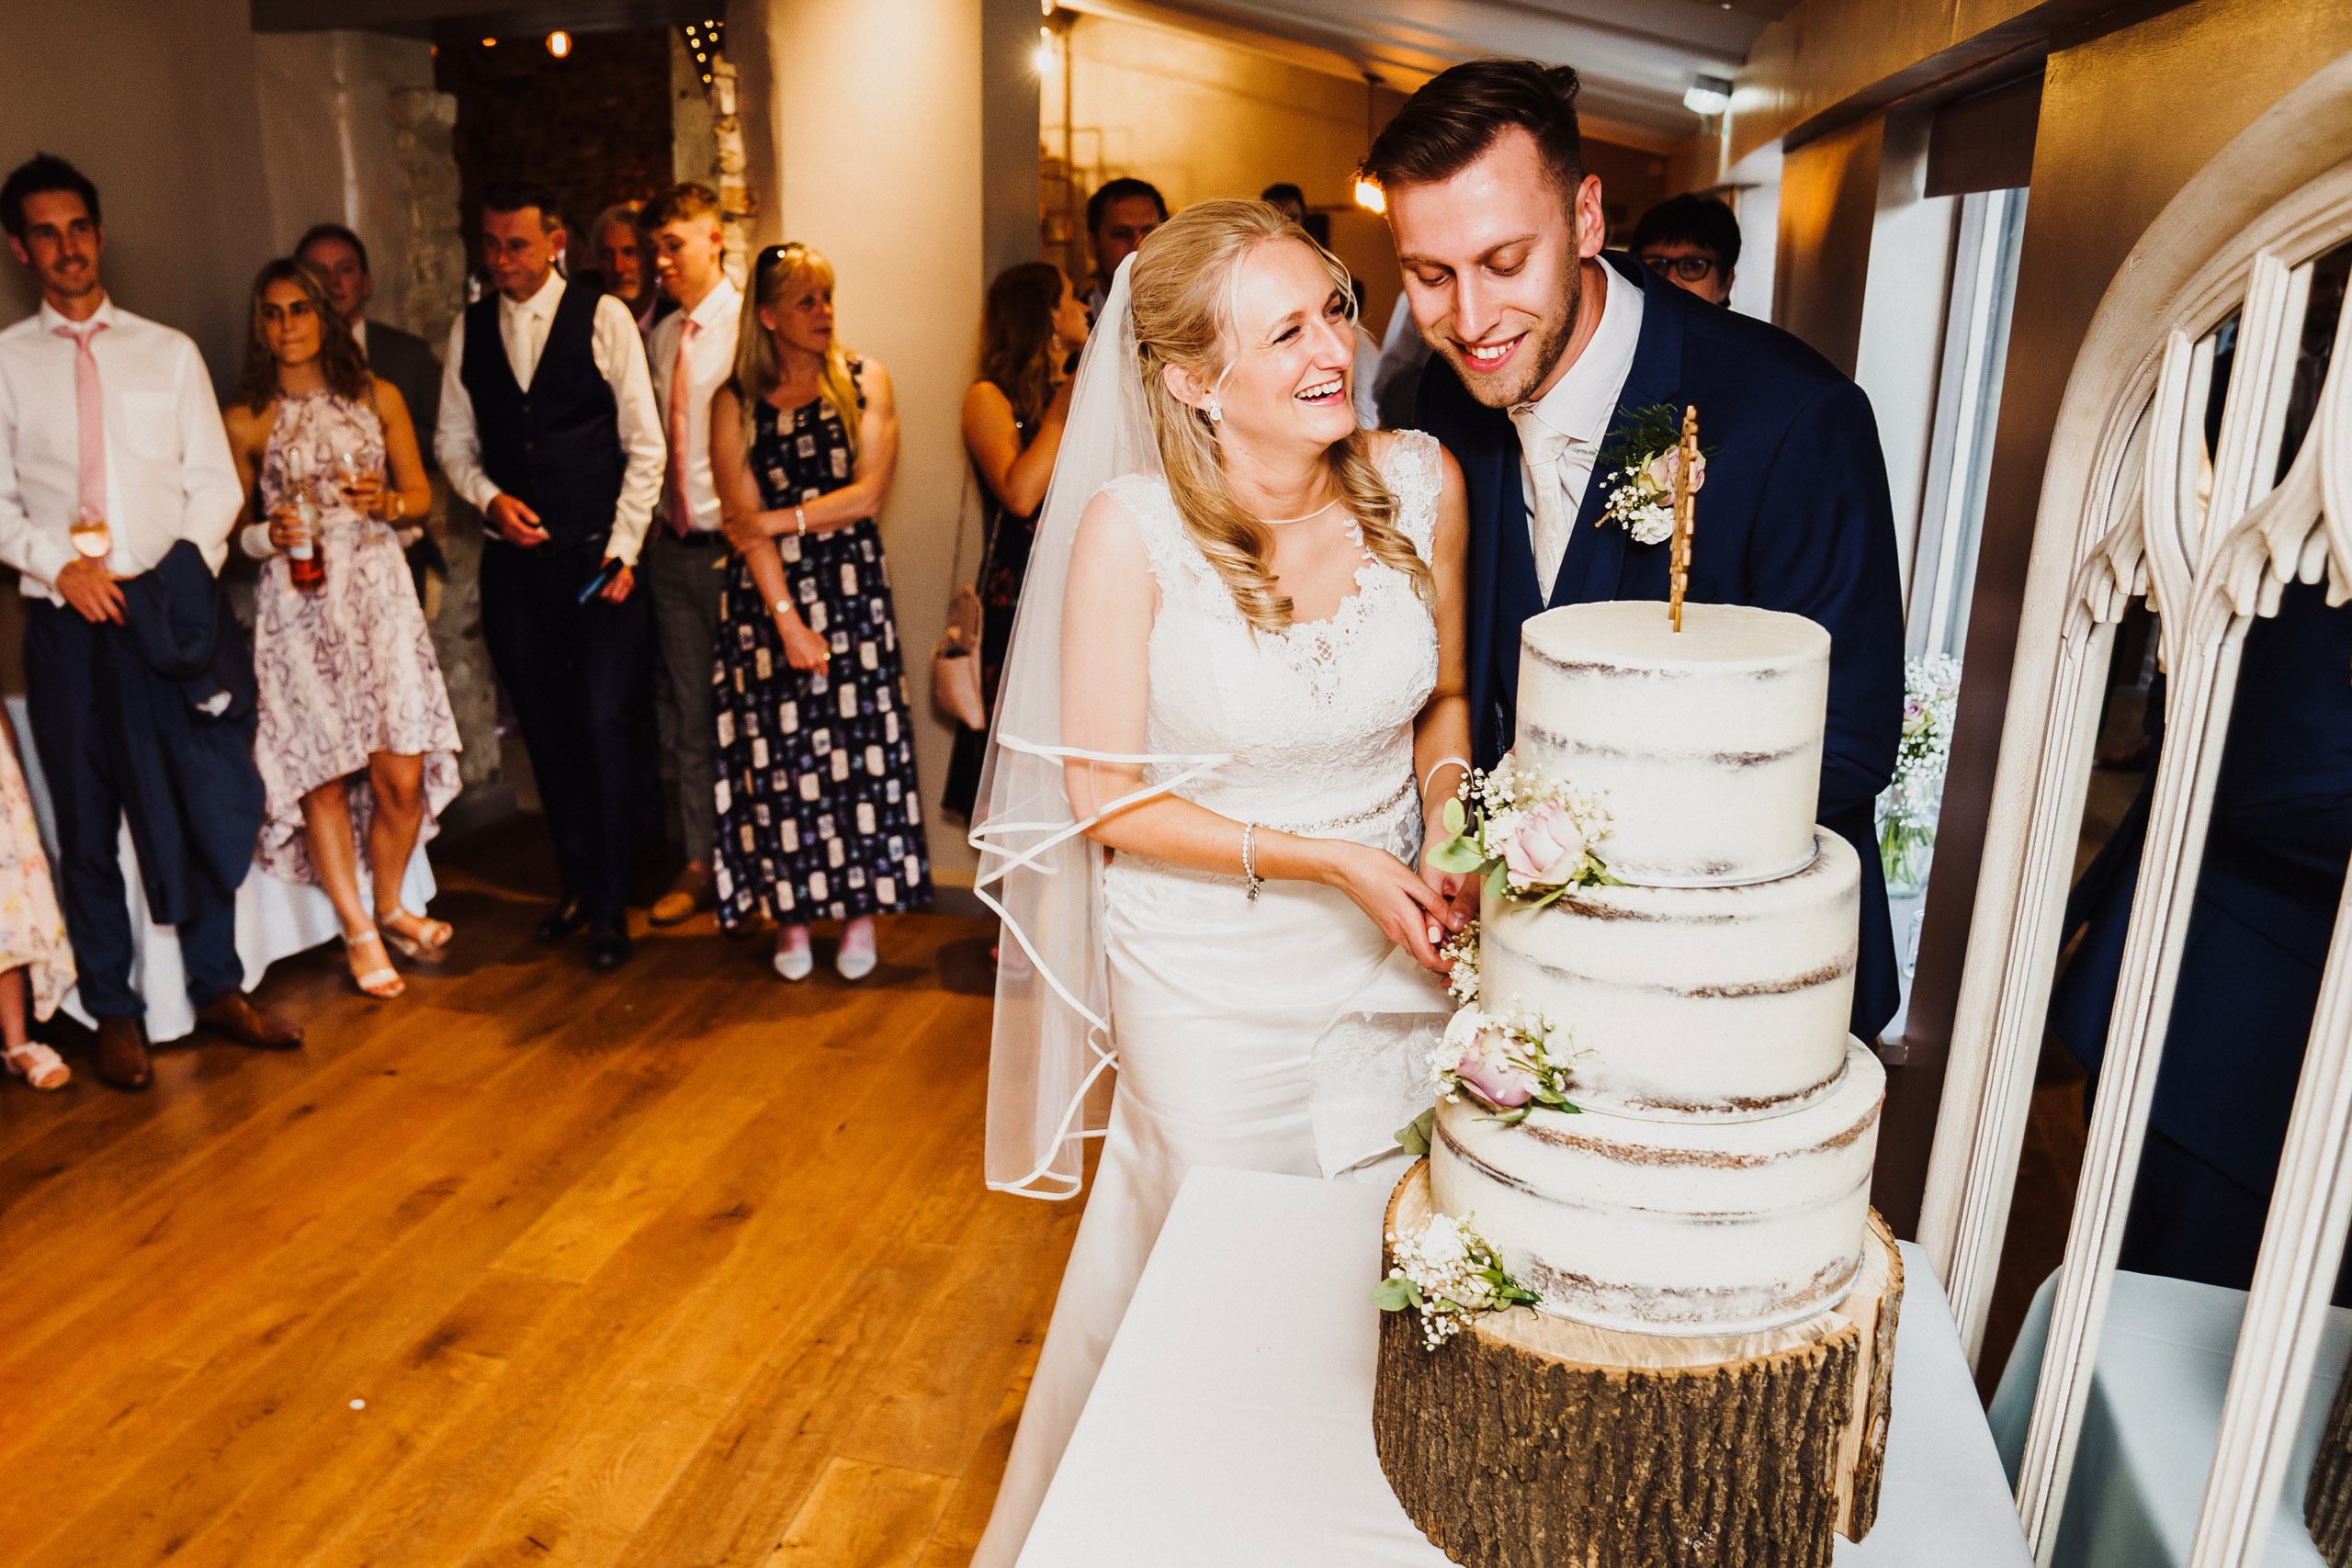 Bride and Groom cut their cake at a Pentney Abbey wedding